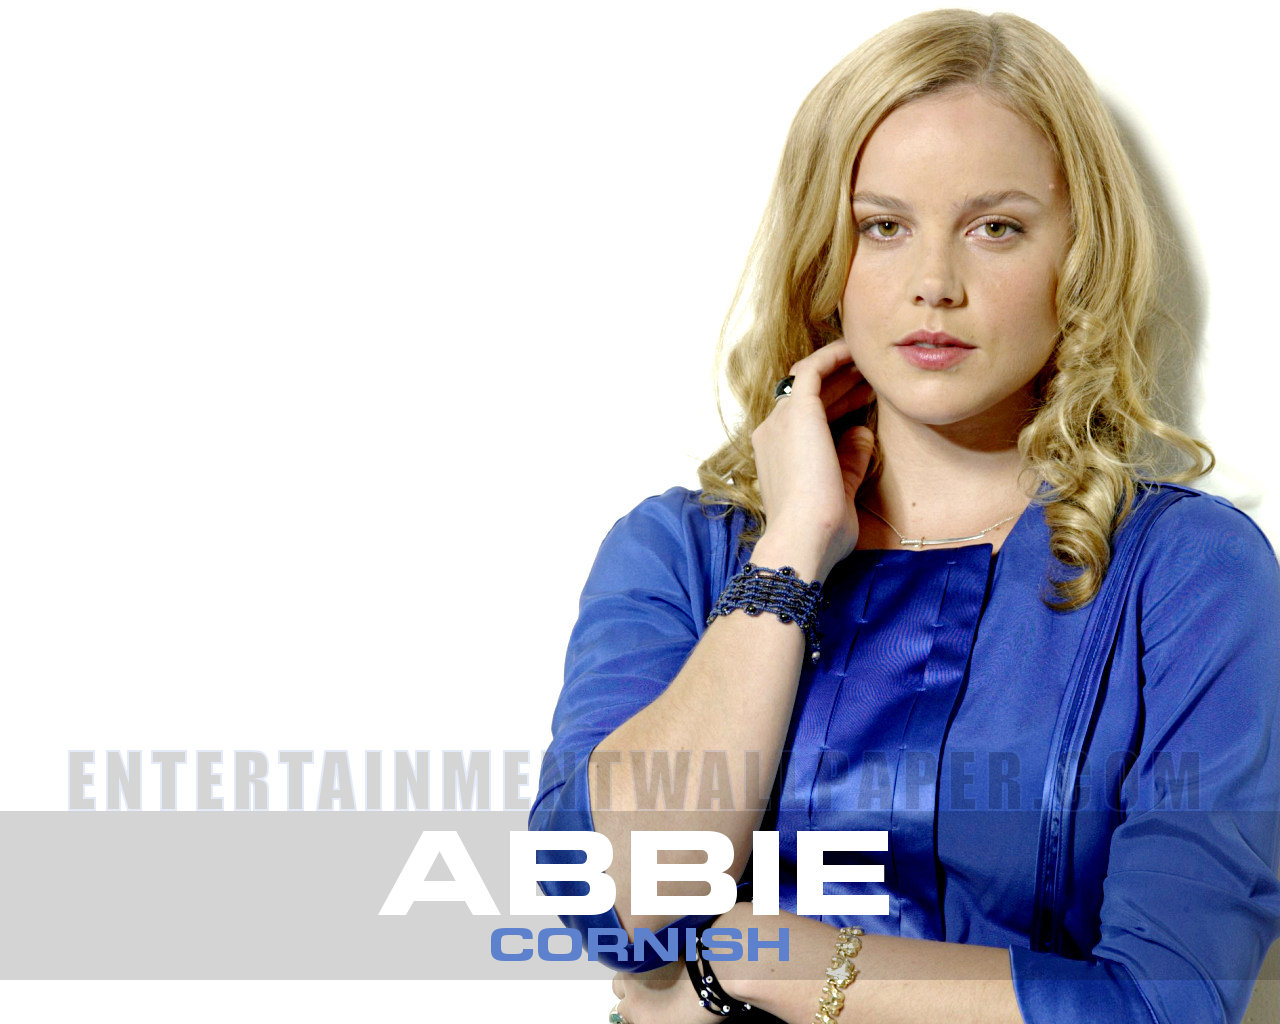 Abbie Cornish 2012 Hd Wallpapers